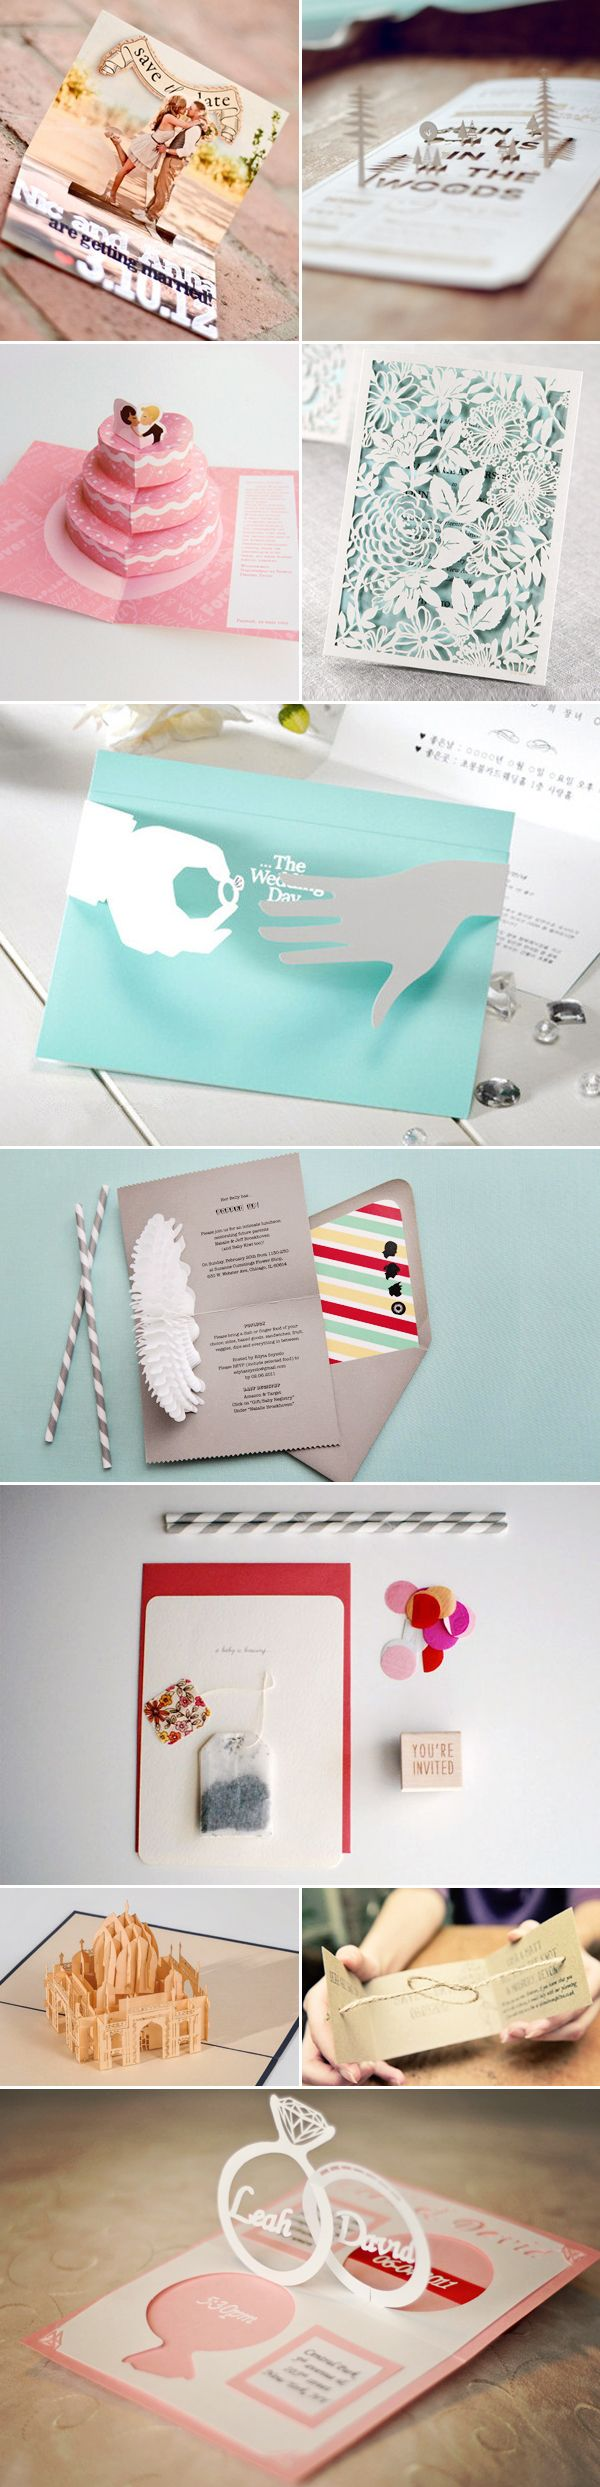 17 Creative and Fun 3D Wedding Invitation Cards | Pinterest | 3d ...